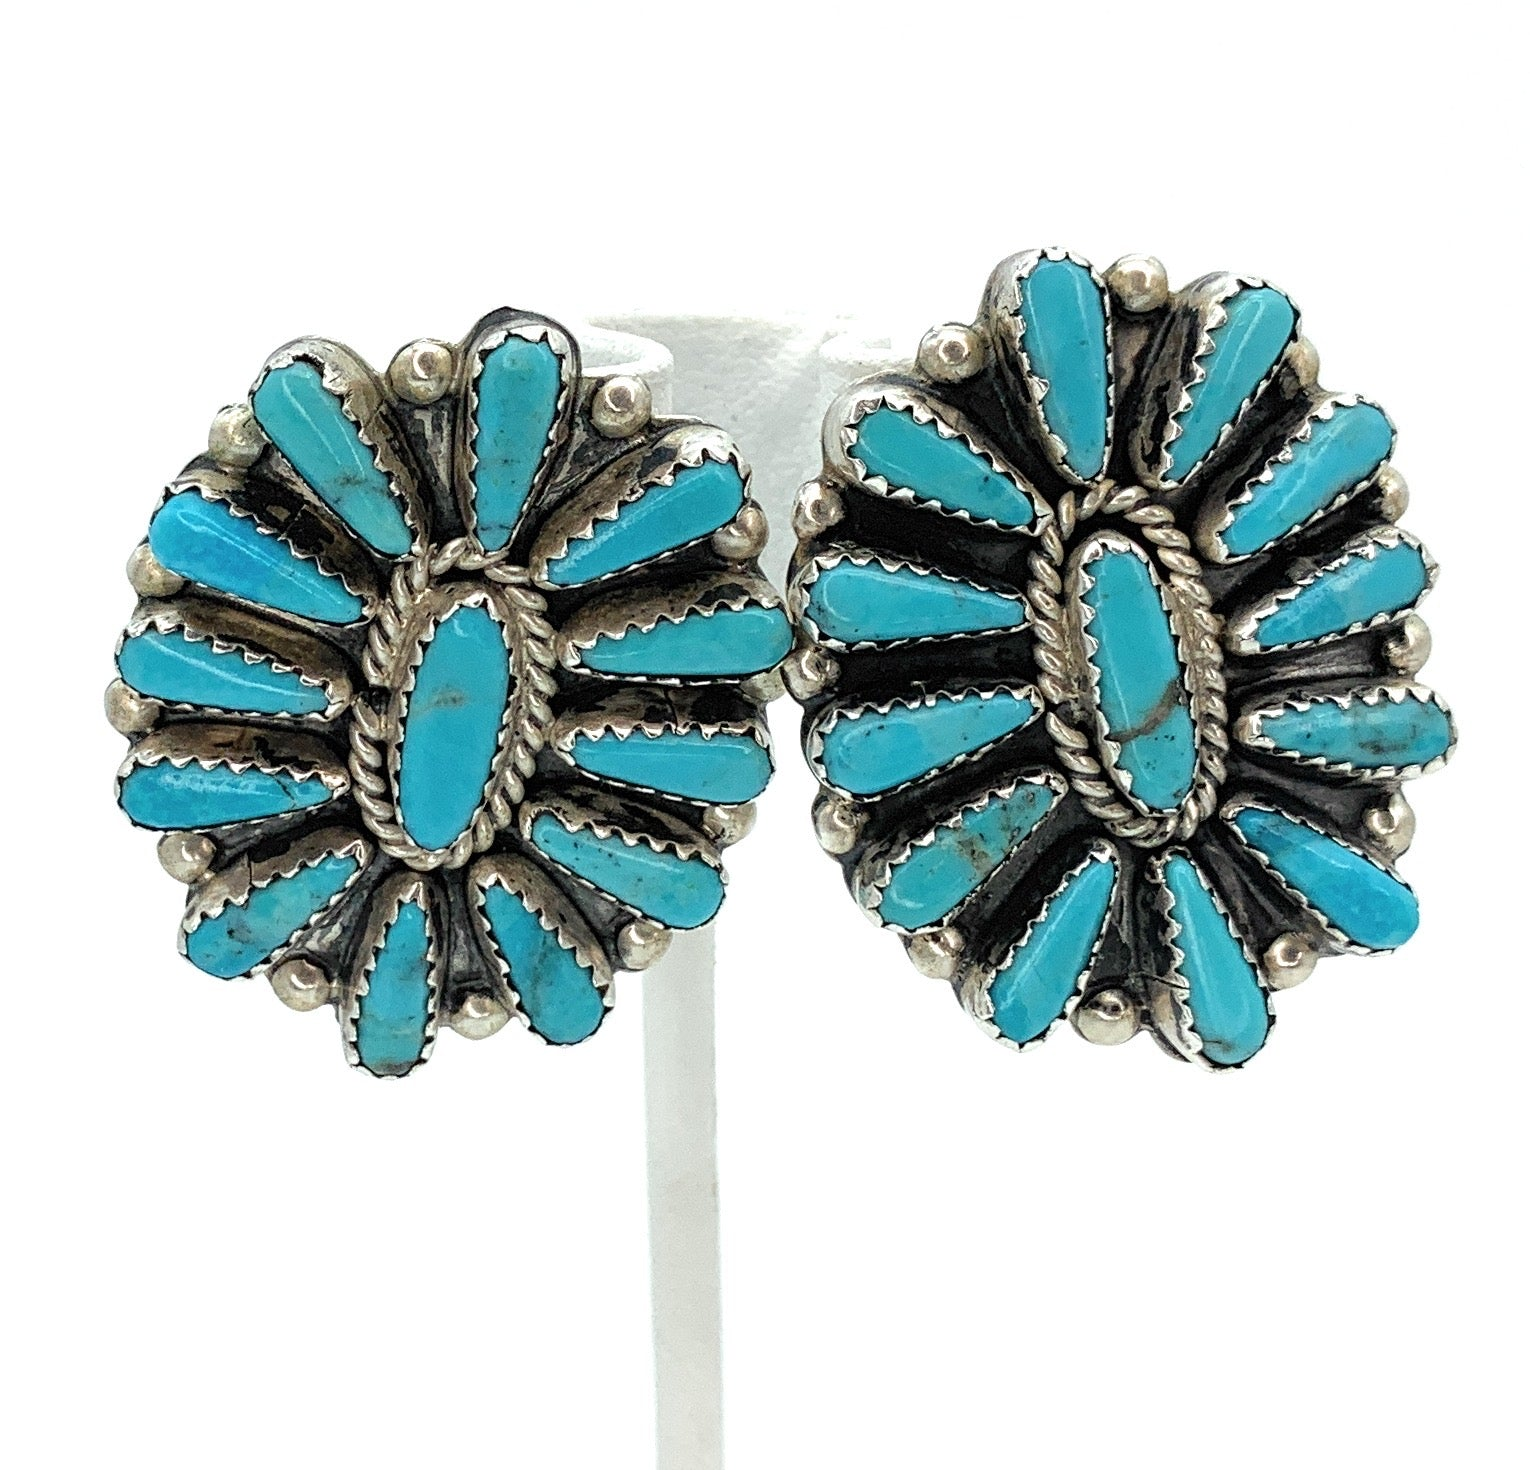 Vintage Native Old Pawn Sterling Concho Sleeping Beauty Turquoise Earrings